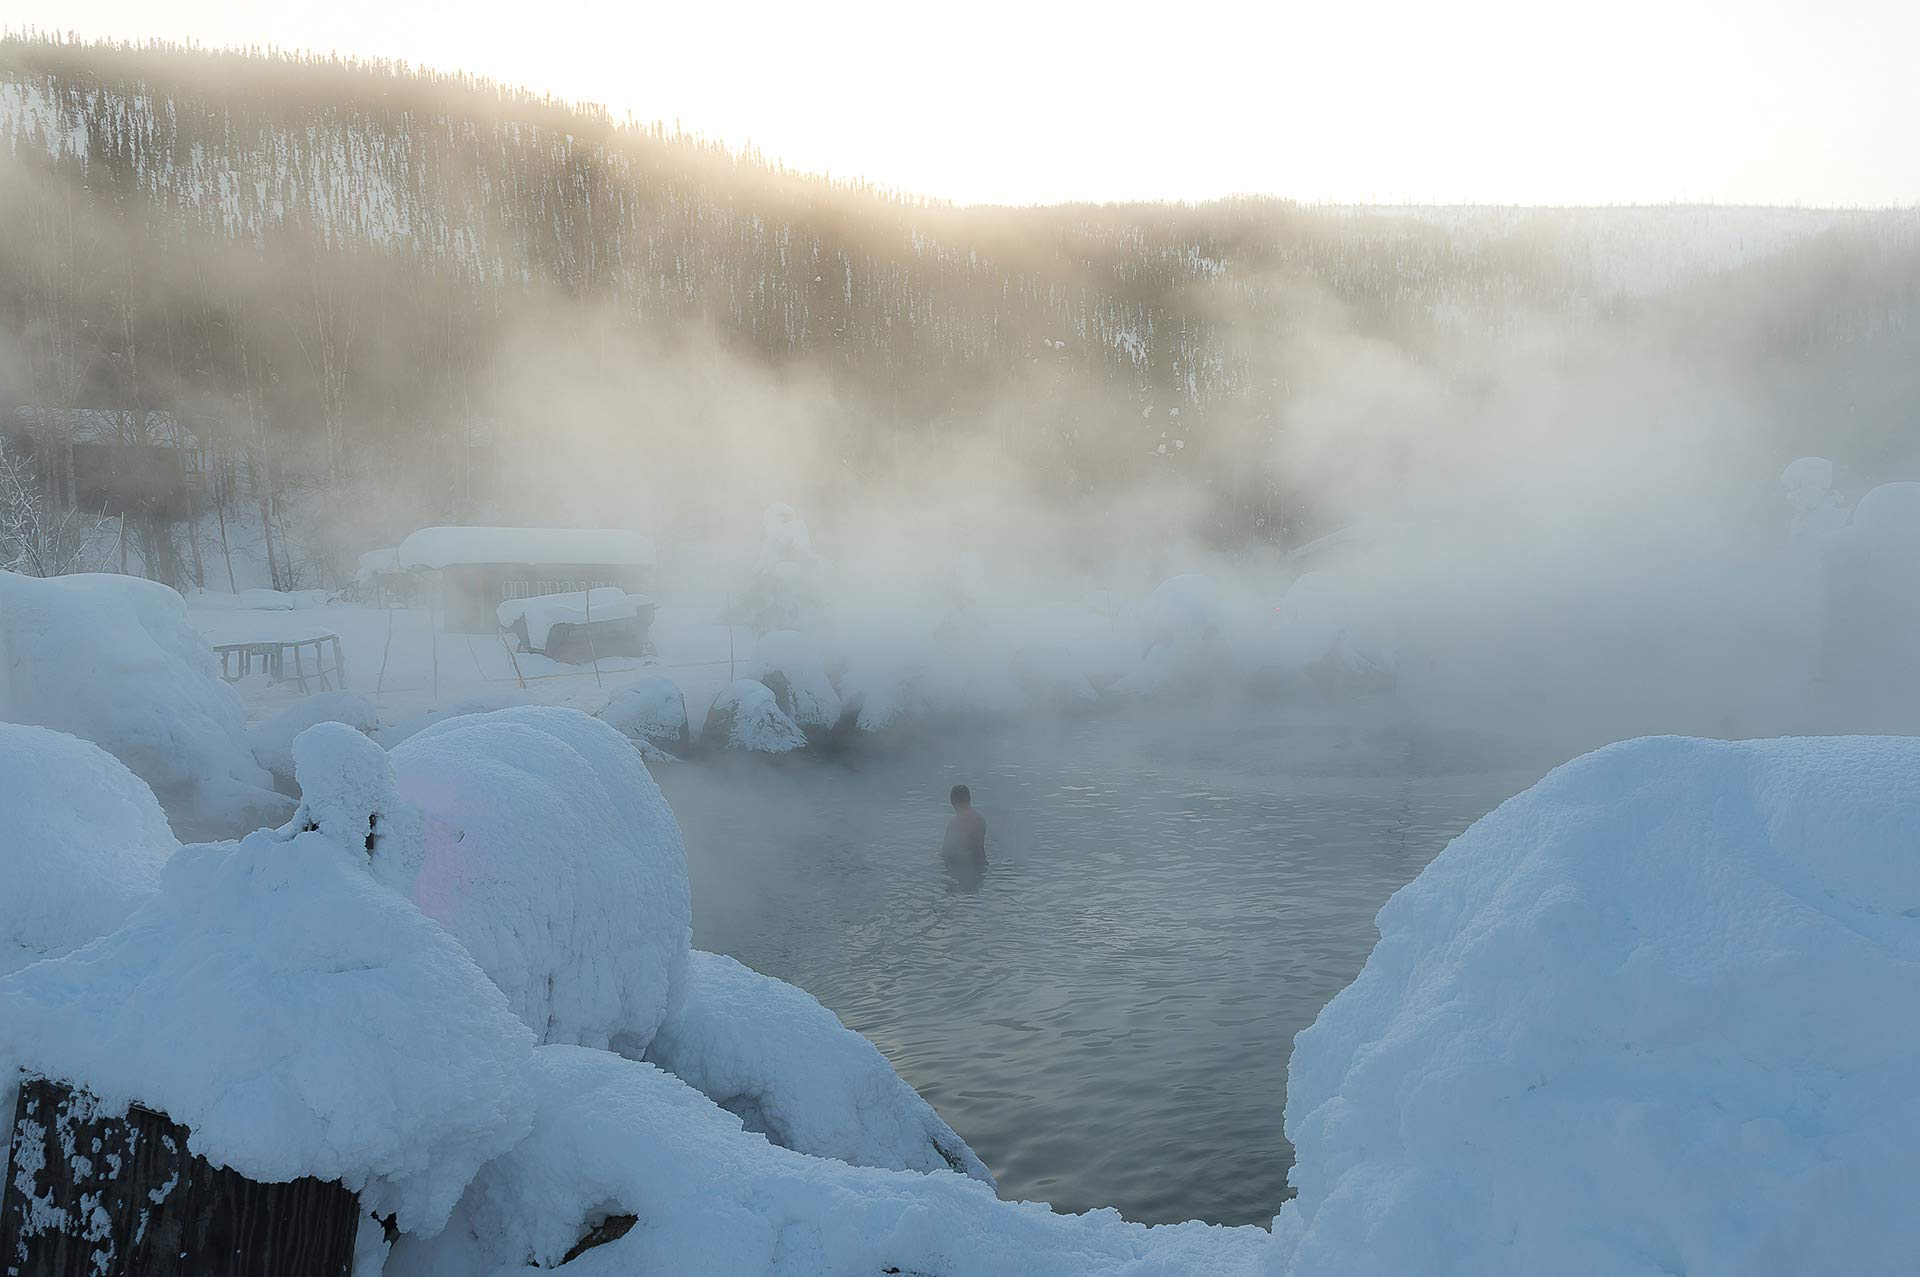 Yacht Charter Destination Alaska Highlight Chena Hot Spring on the top of mountain